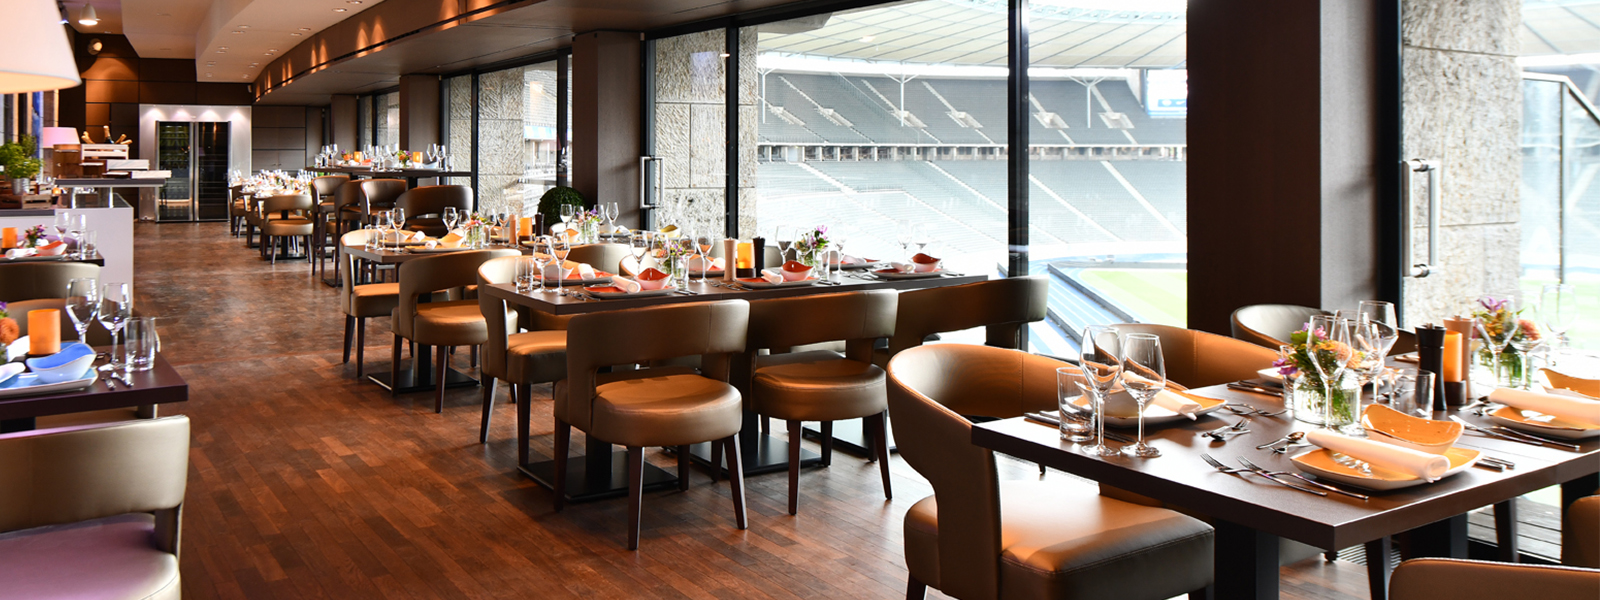 Grill Lounge bei Hertha BSC